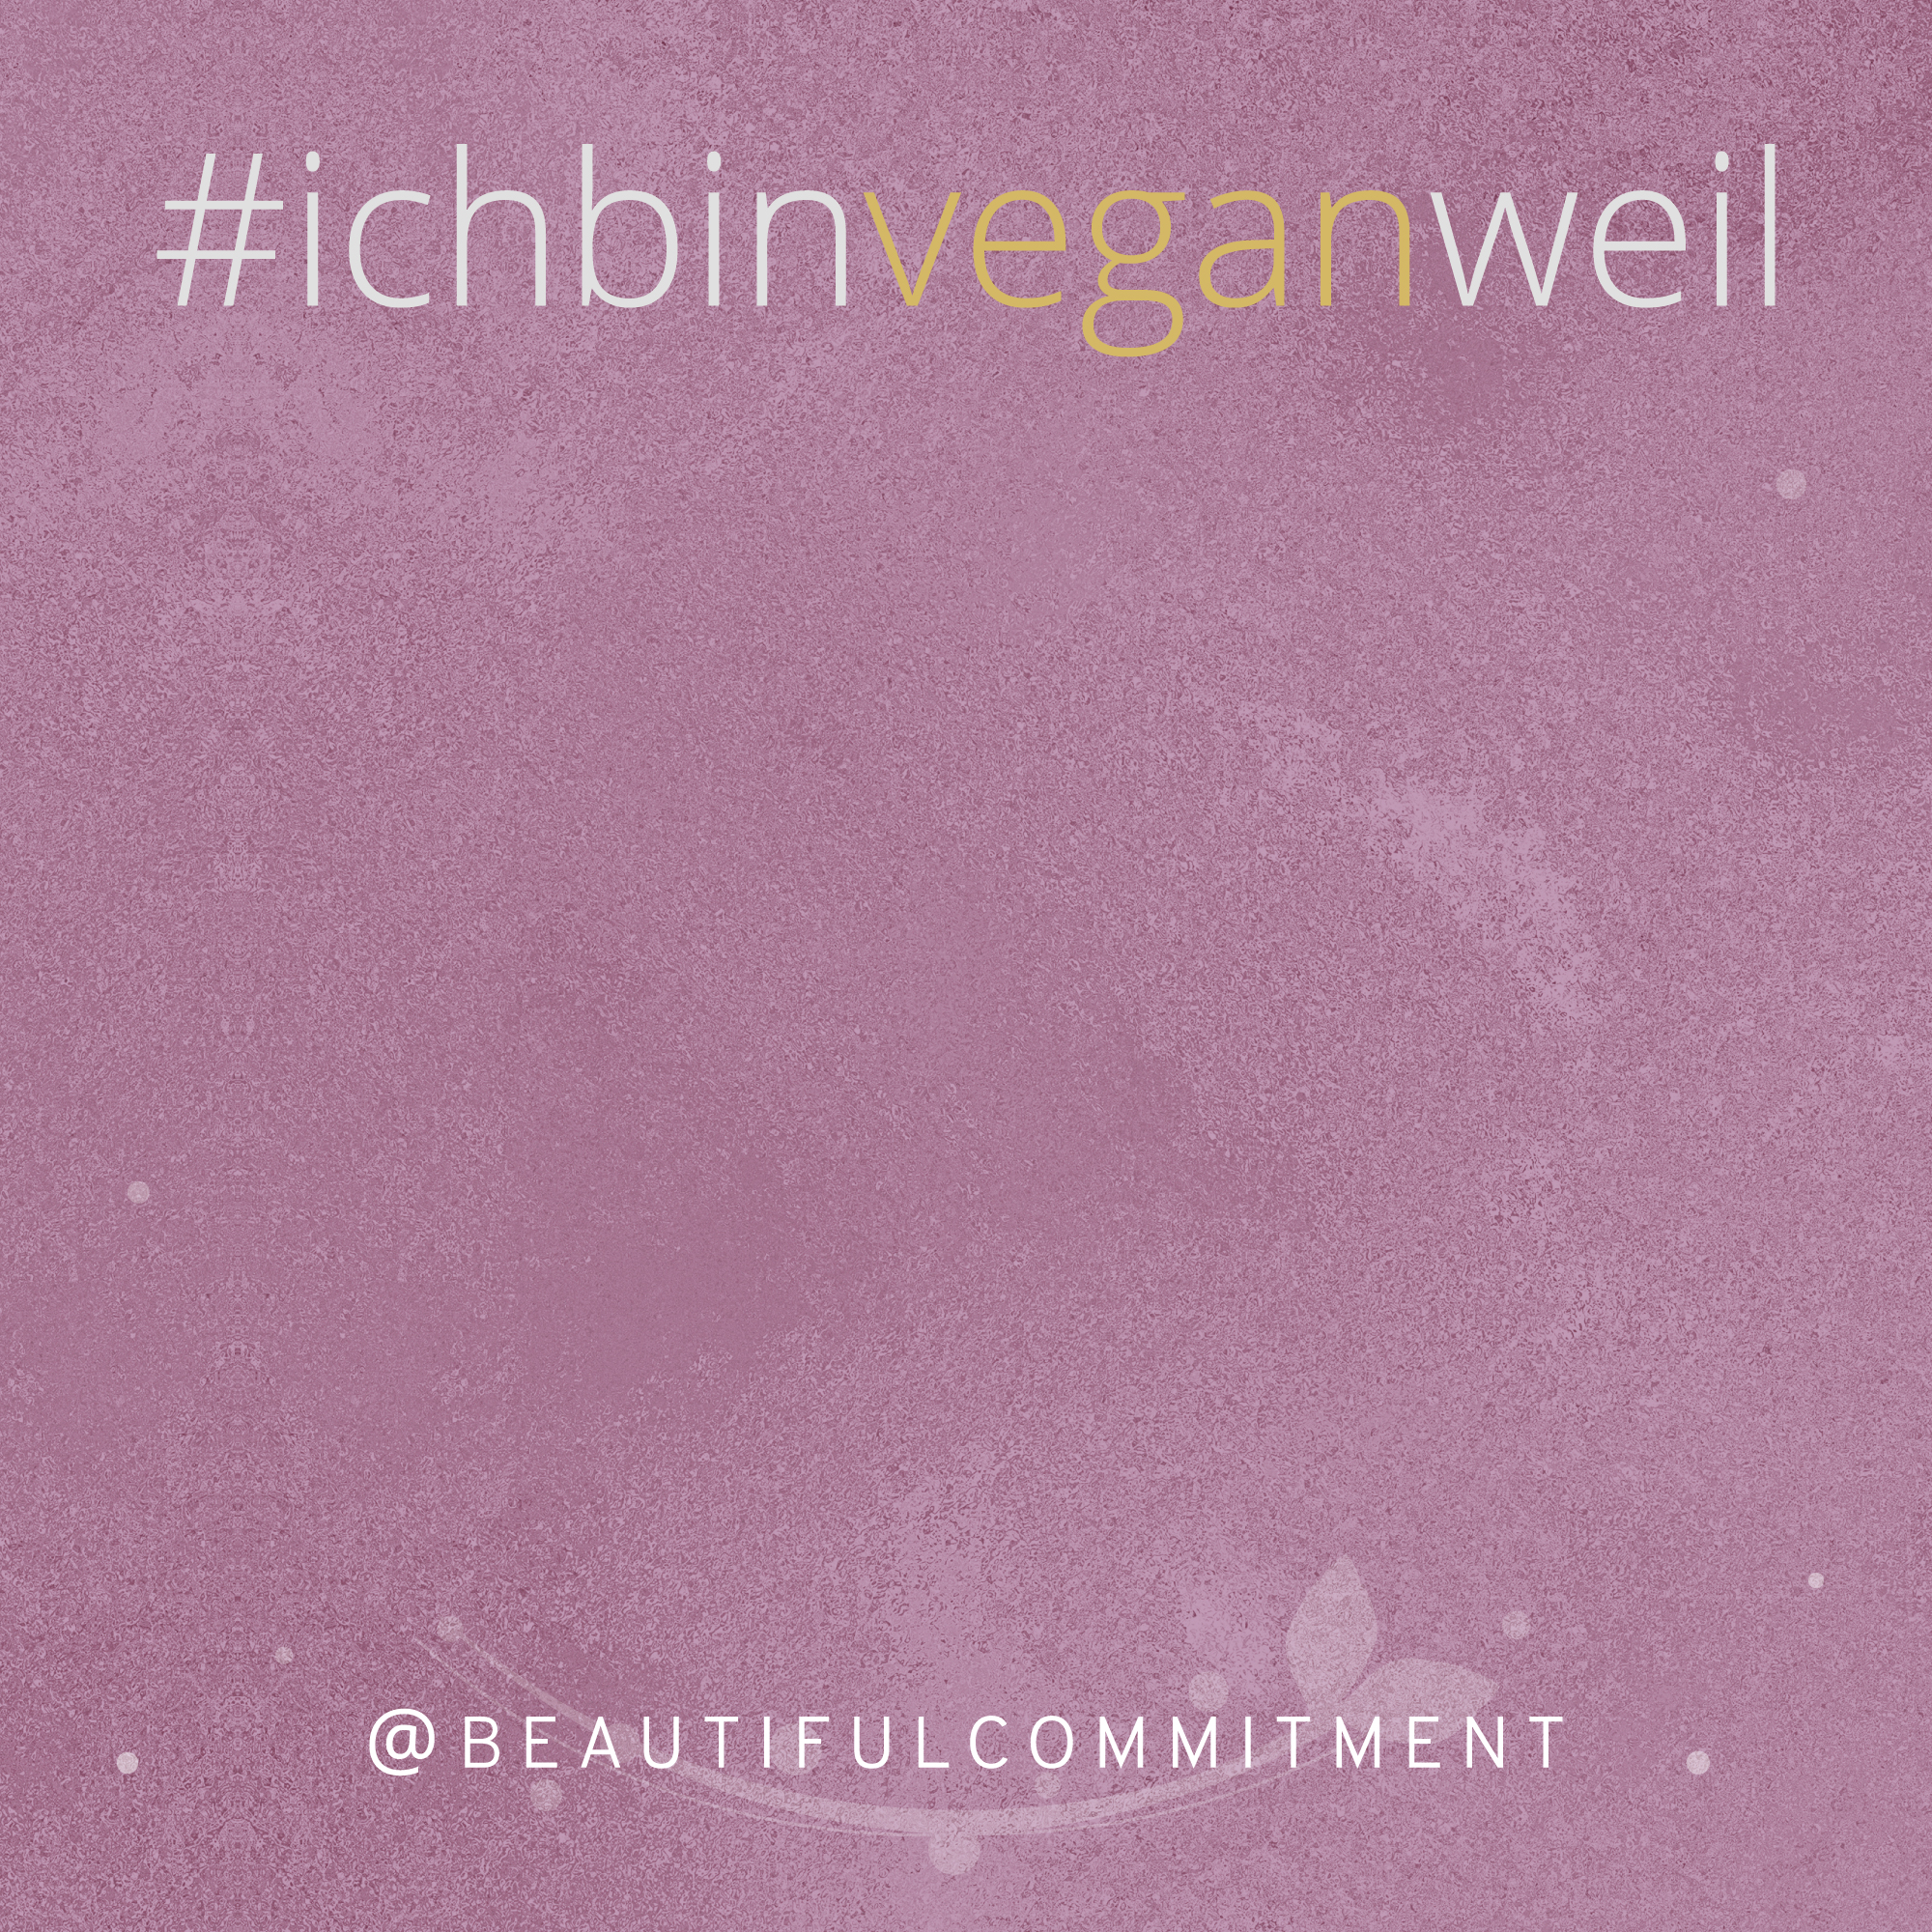 Beautiful Commitment ichbinveganweil Vorlage